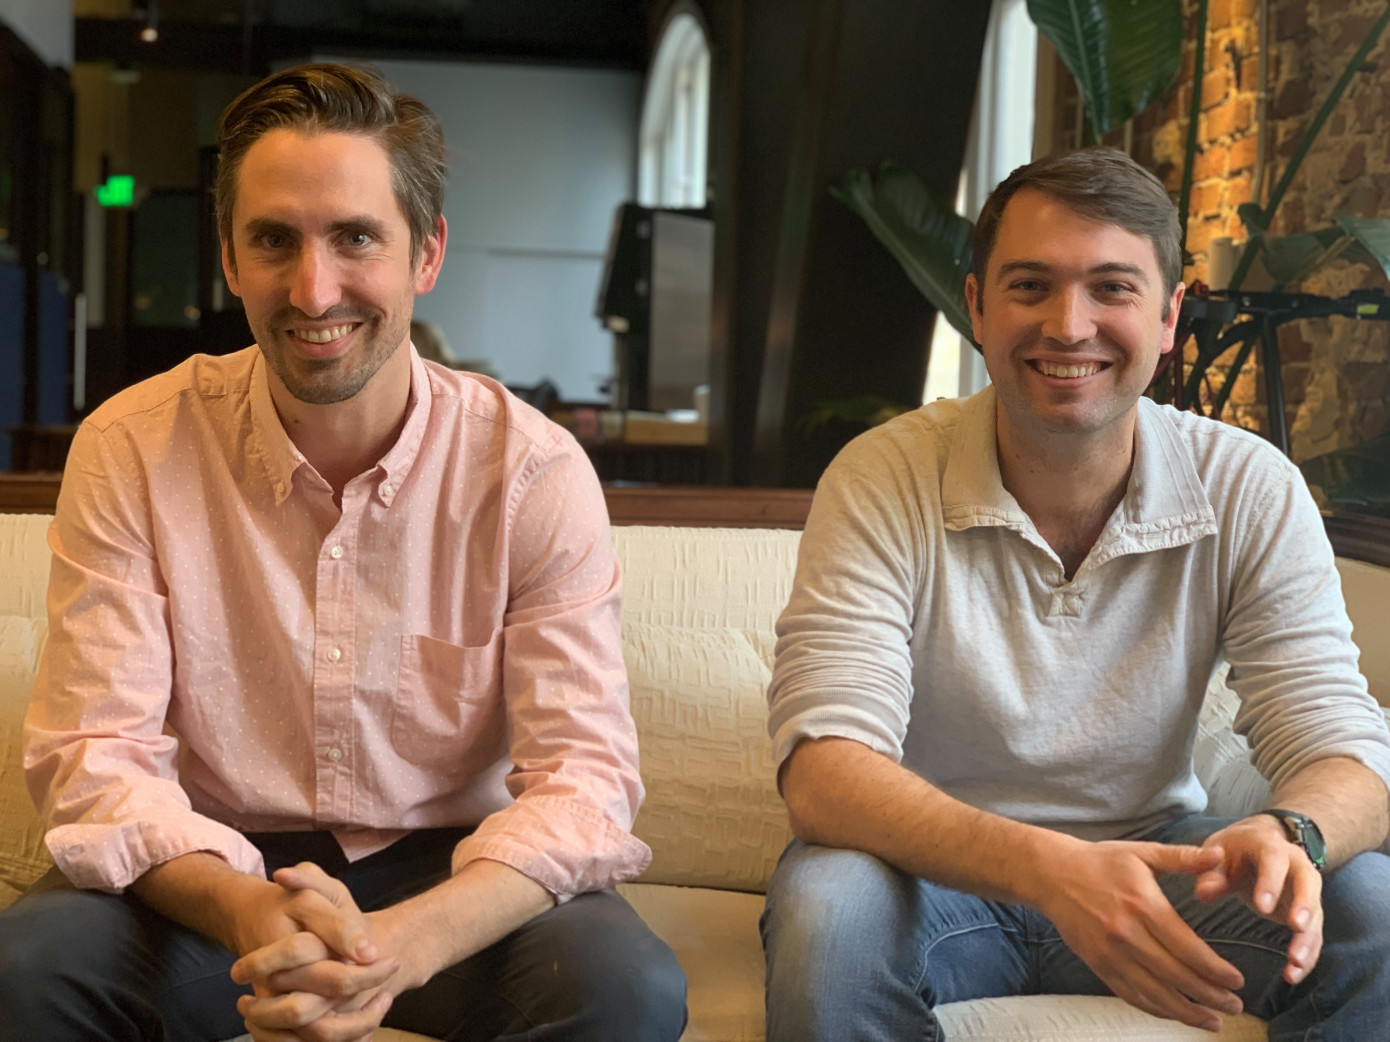 YC-backed Goodcover launches into the fast-moving insurtech space (Jordan Crook, techcrunch.com)